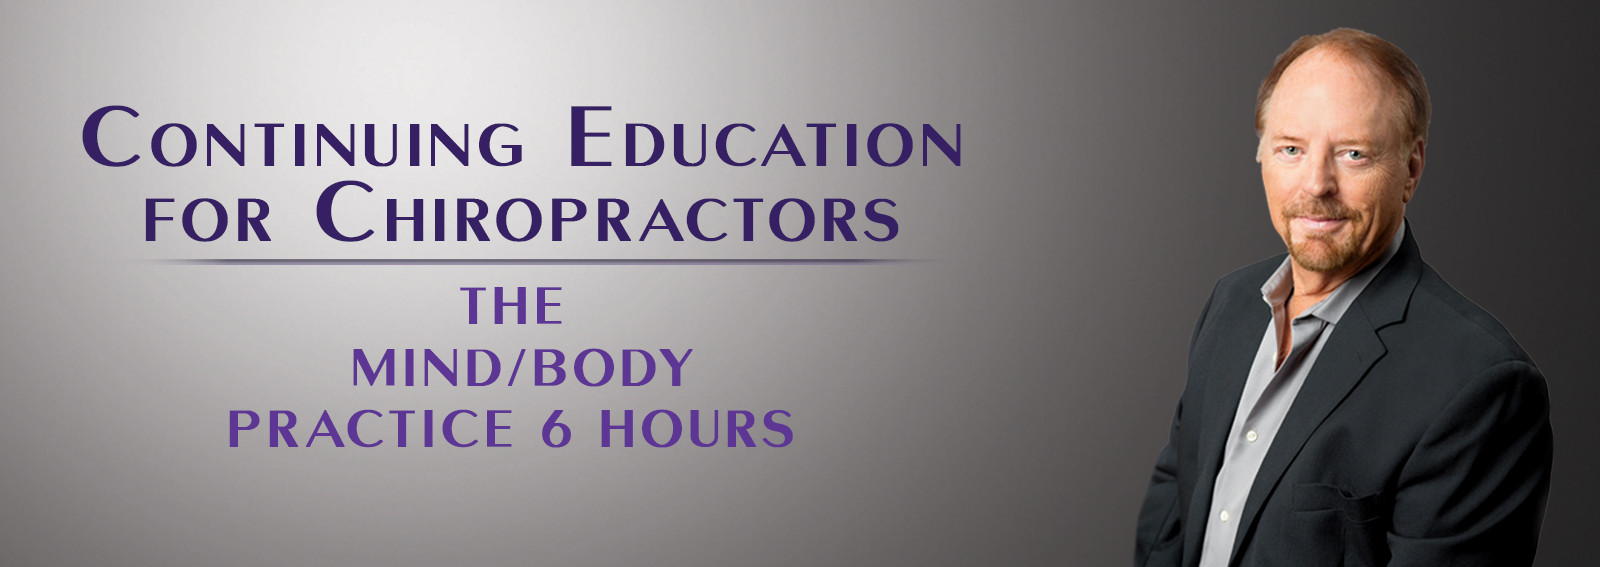 CE for Chiropractors by Dr. Mitchell Mays